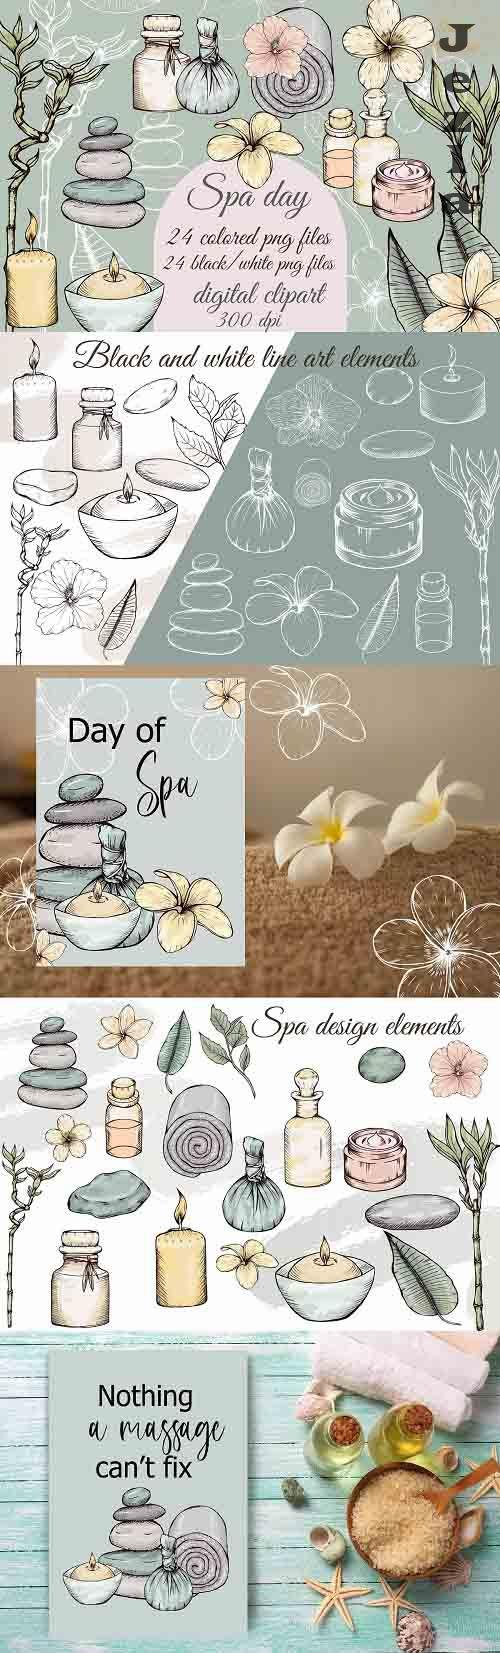 Spa day clipart, wellness png, beauty and selfcare clip art - 1411309